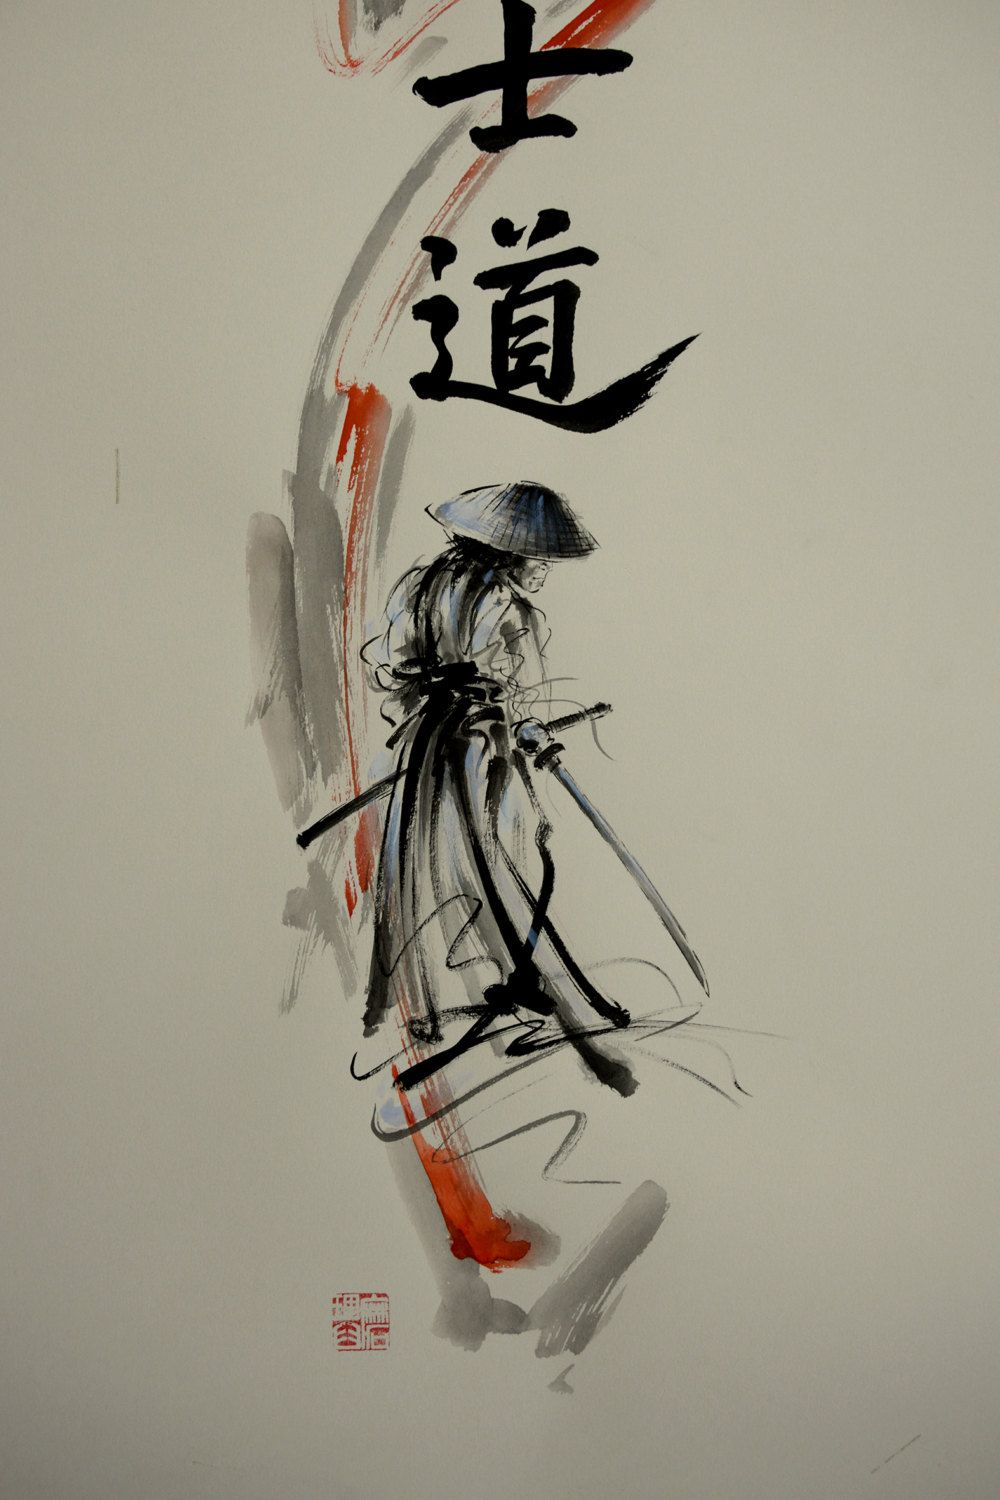 Bushido Way of the Samurai. Peinture moderne abstraite. | Pomysły na ...